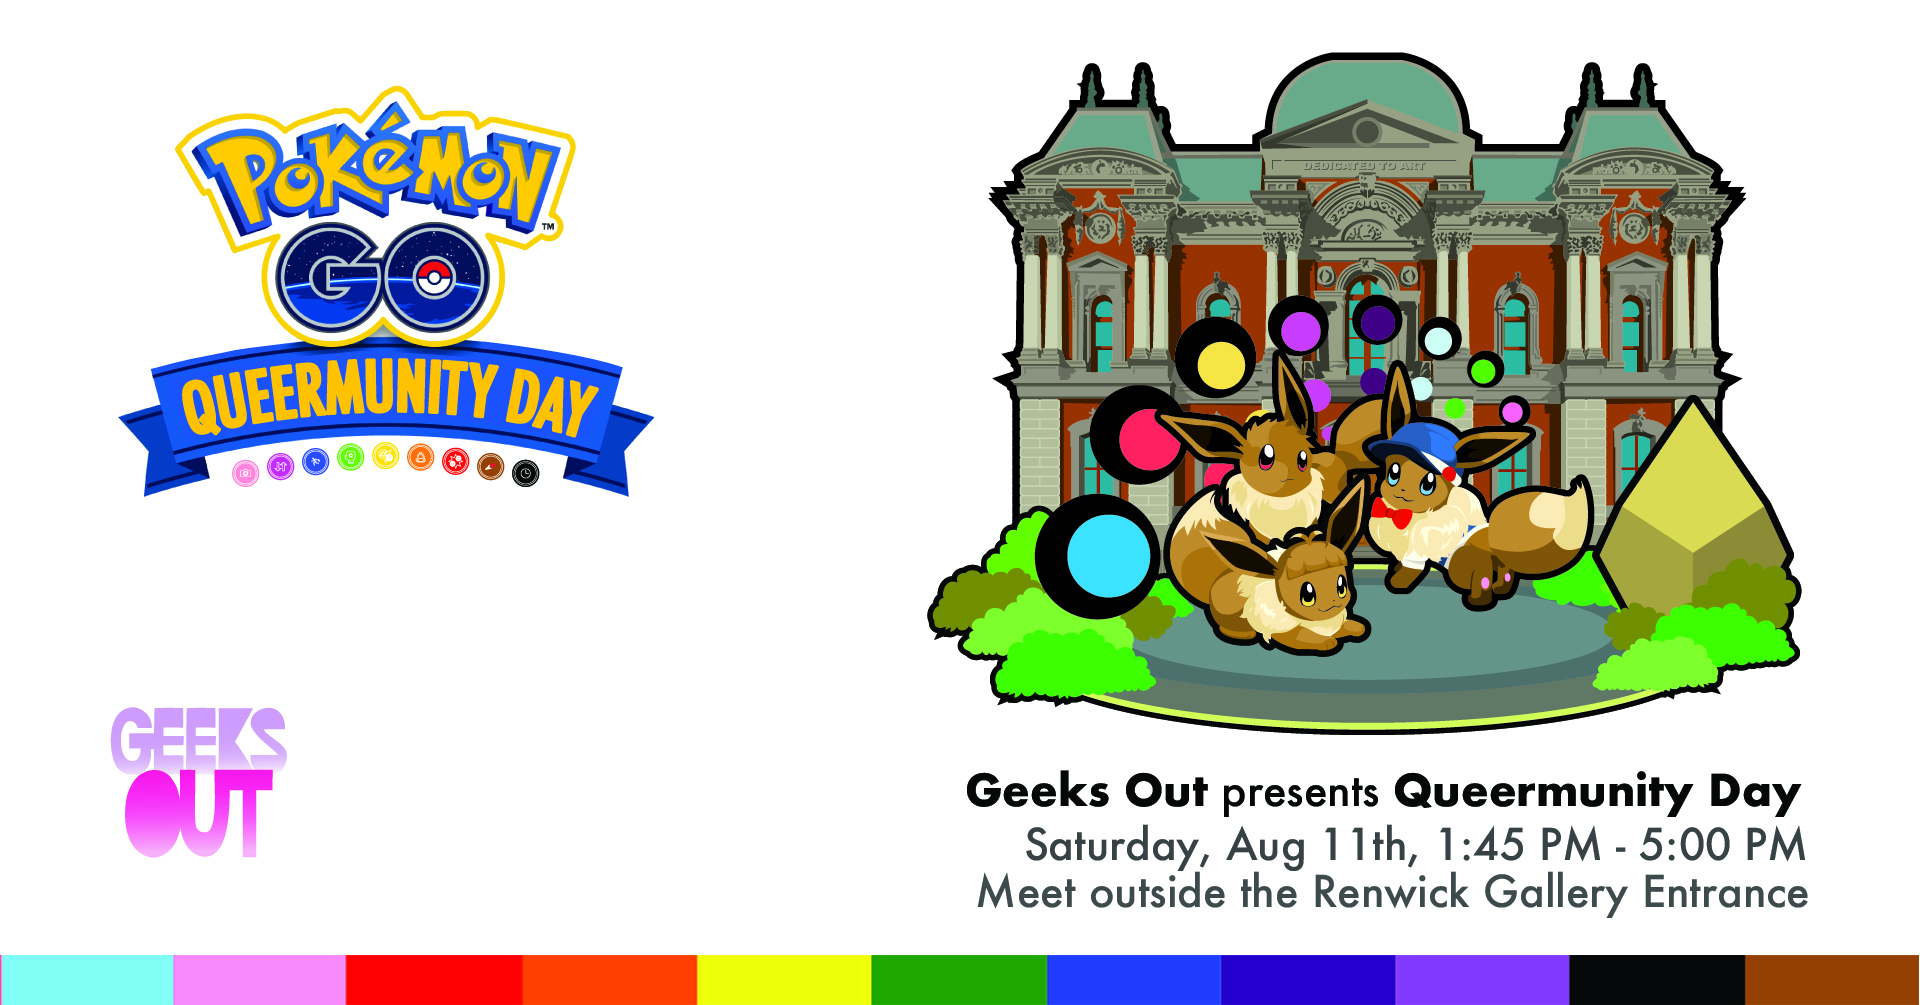 Geeks OUT DC – Pokemon Go Queermunity Day, Renwick Gallery